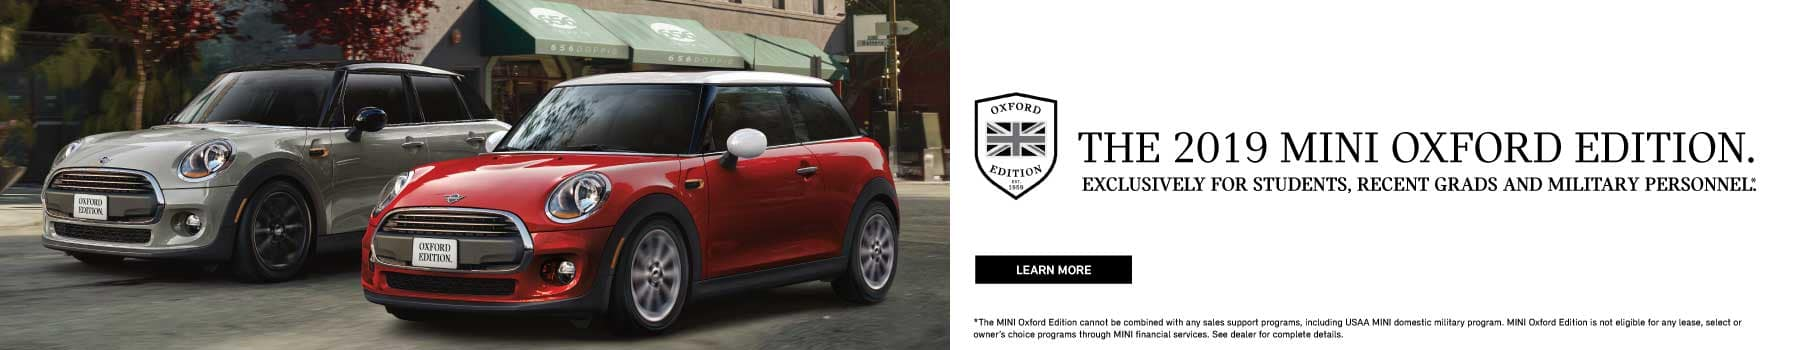 2019 MINI Oxford